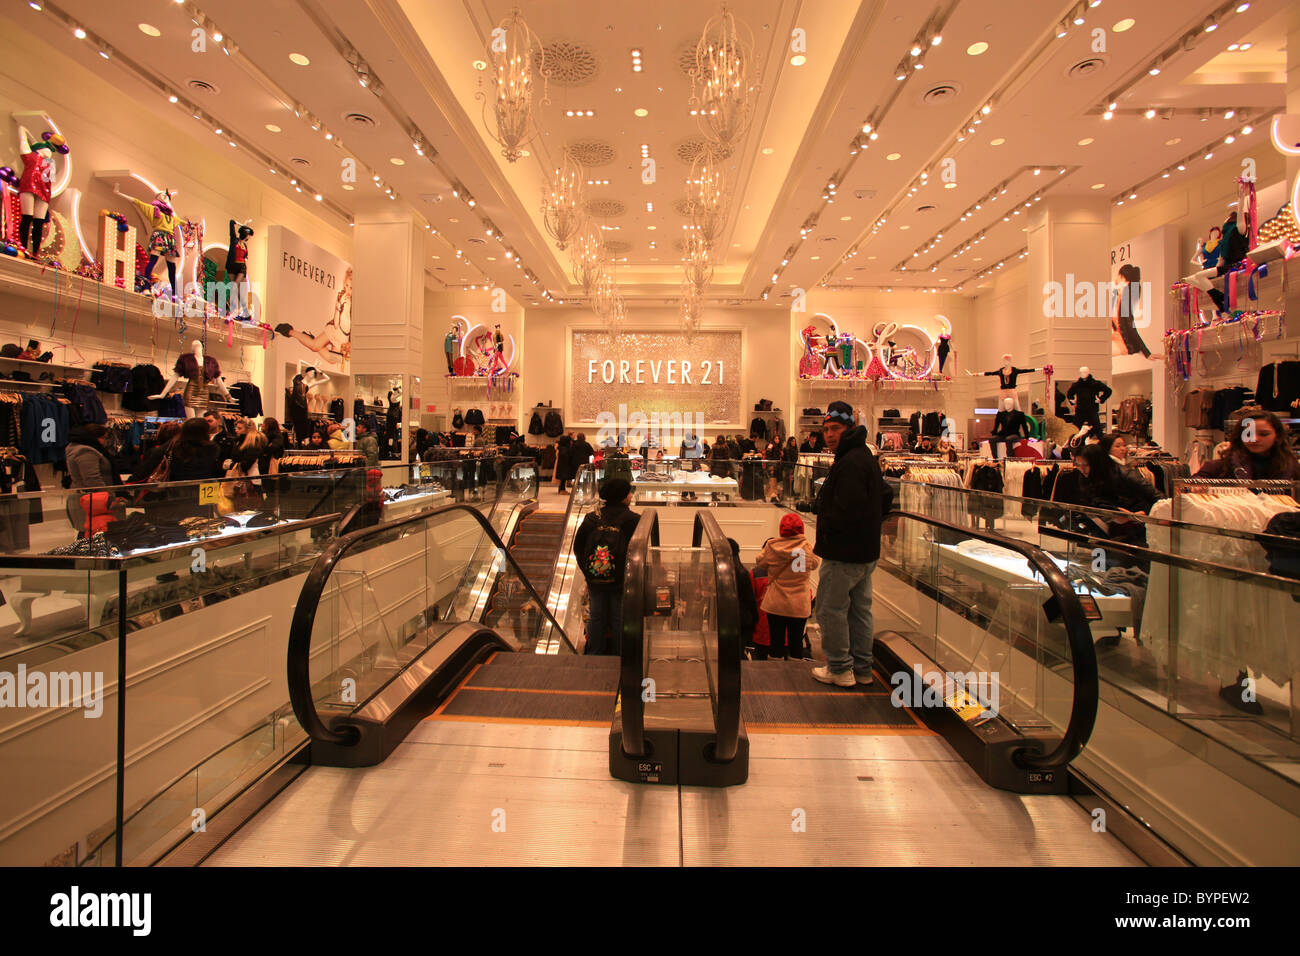 forever 21 shopping center in times square new york city stock photo